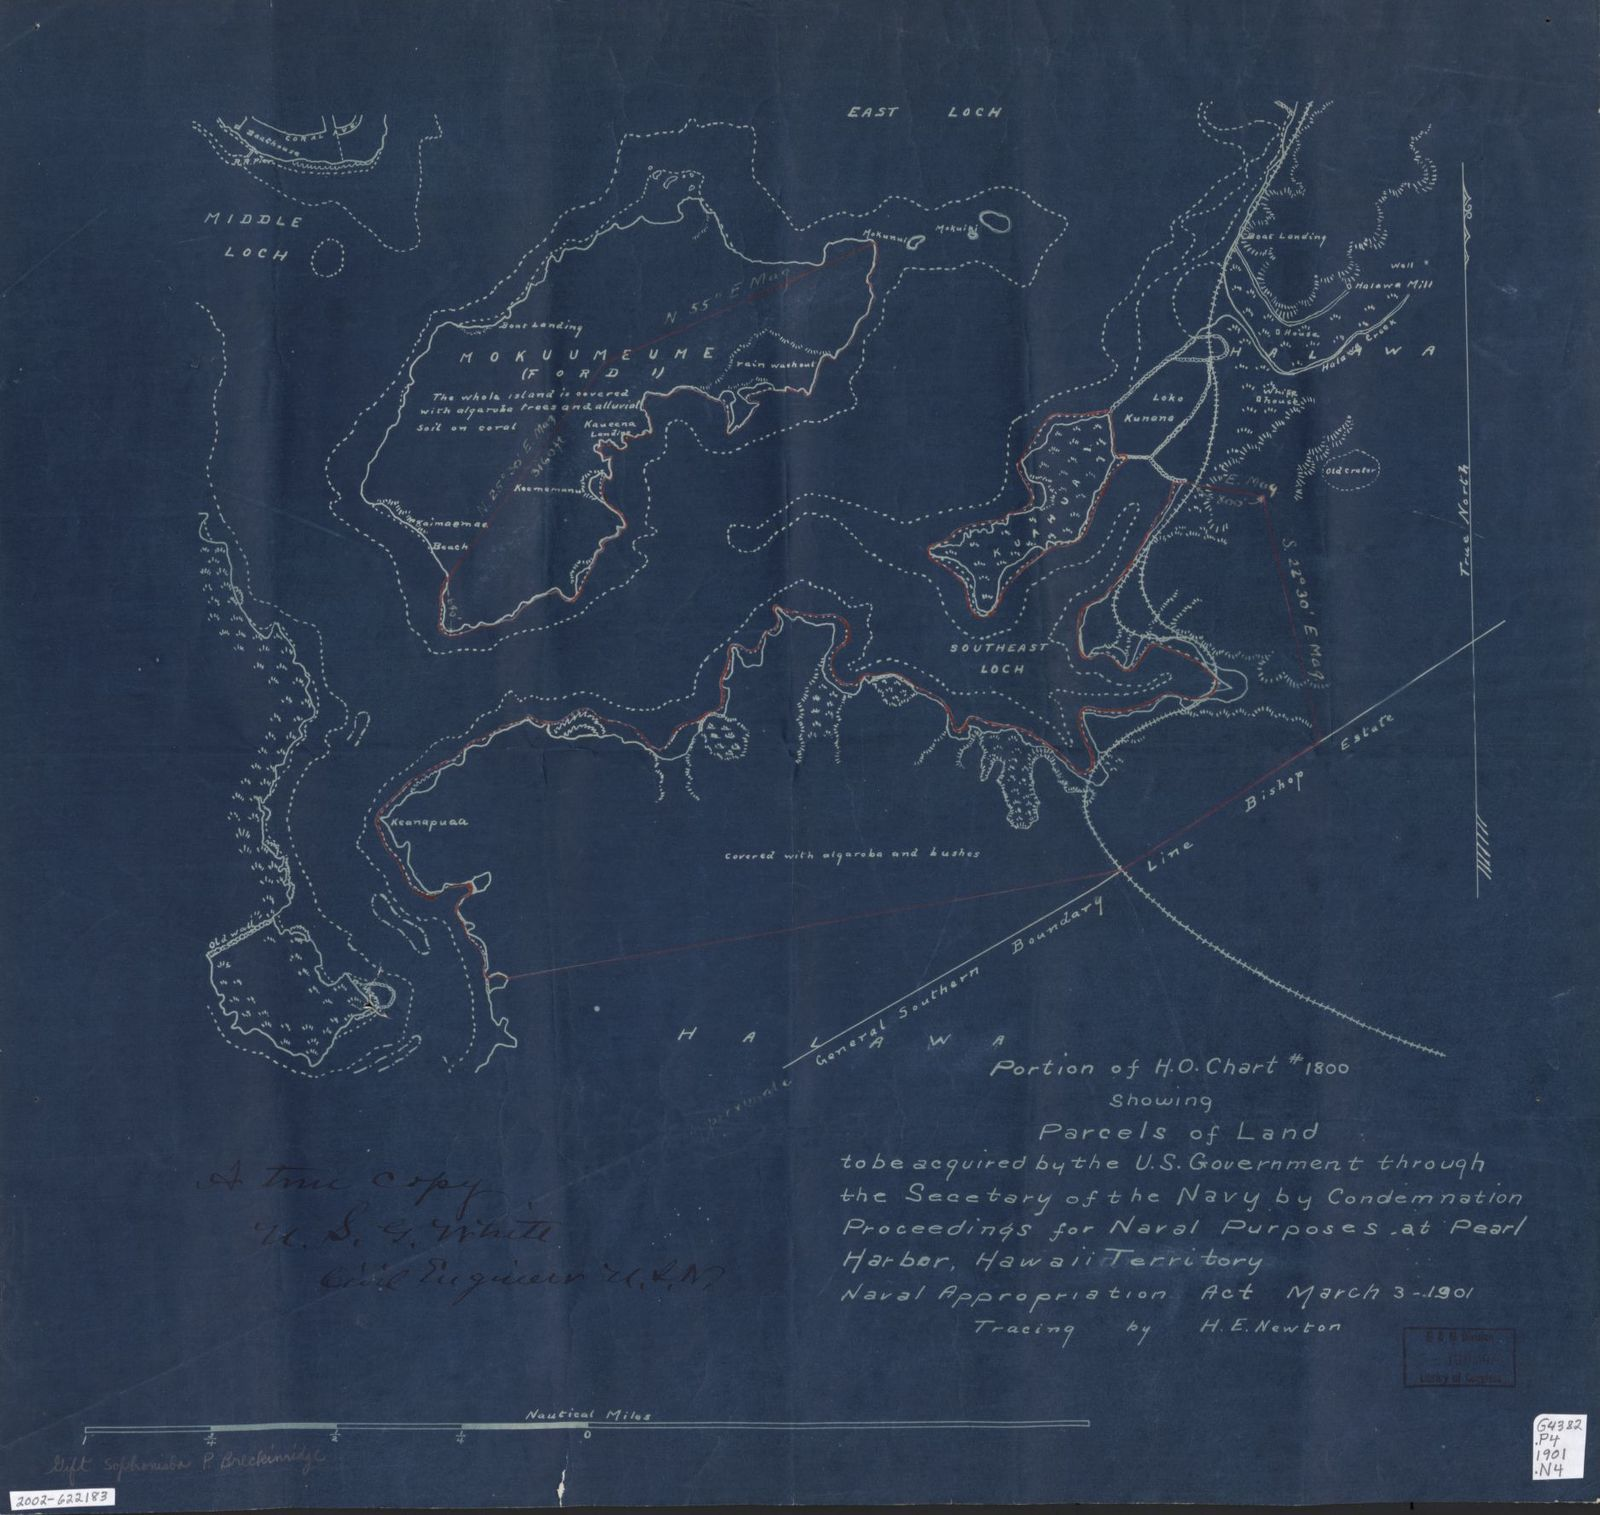 Portion of H.O. chart #1800 showing parcels of land to be acquired by the U.S. Government through the Secetary [sic] of the Navy by condemnation, proceedings for naval purposes at Pearl Harbor, Hawaii Territory, Naval Appropriation Act, March 3, 1901 /